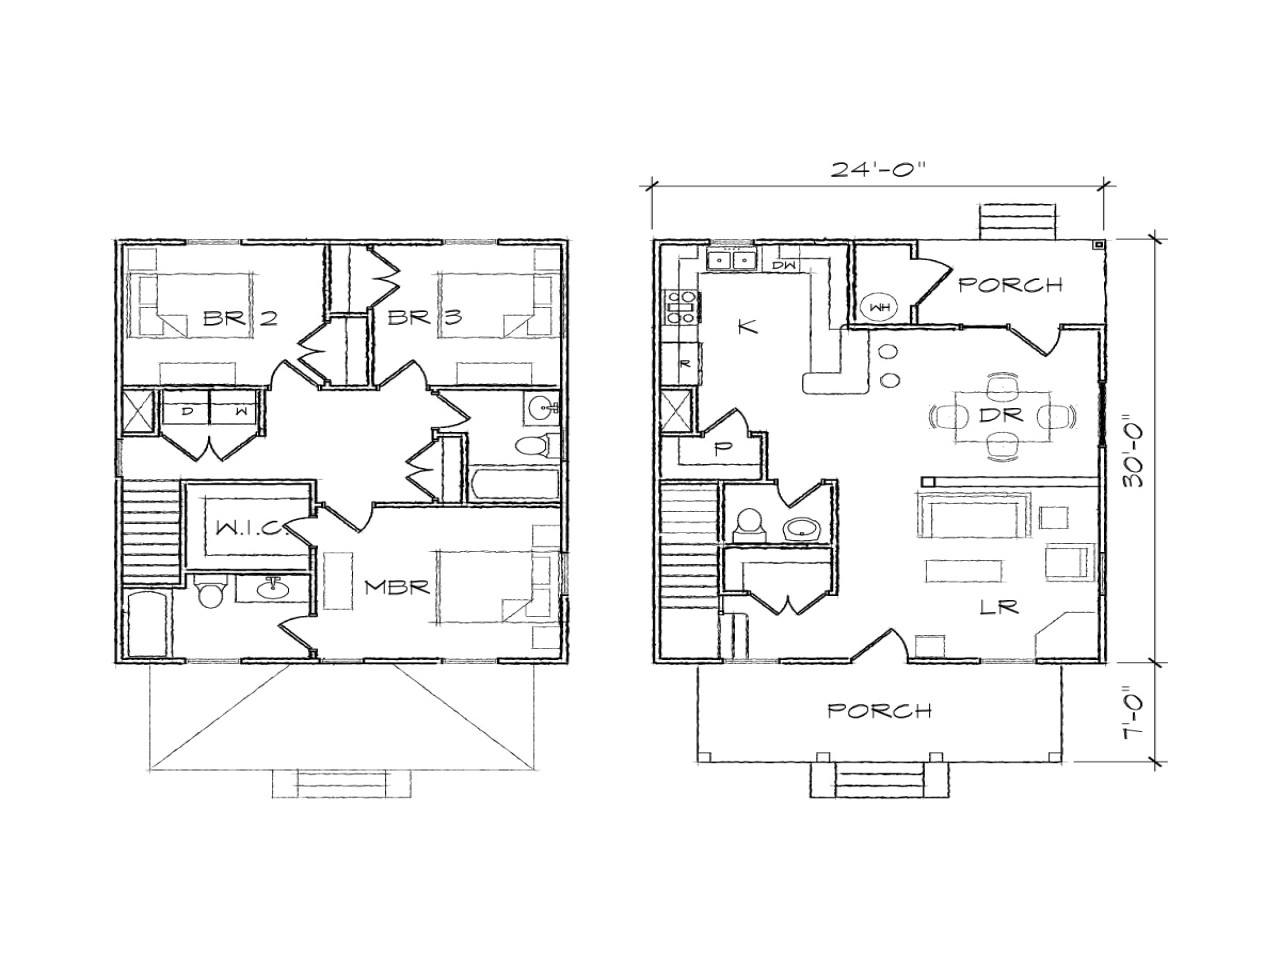 aba92224d88caa71 simple square house plans simple square house floor plans